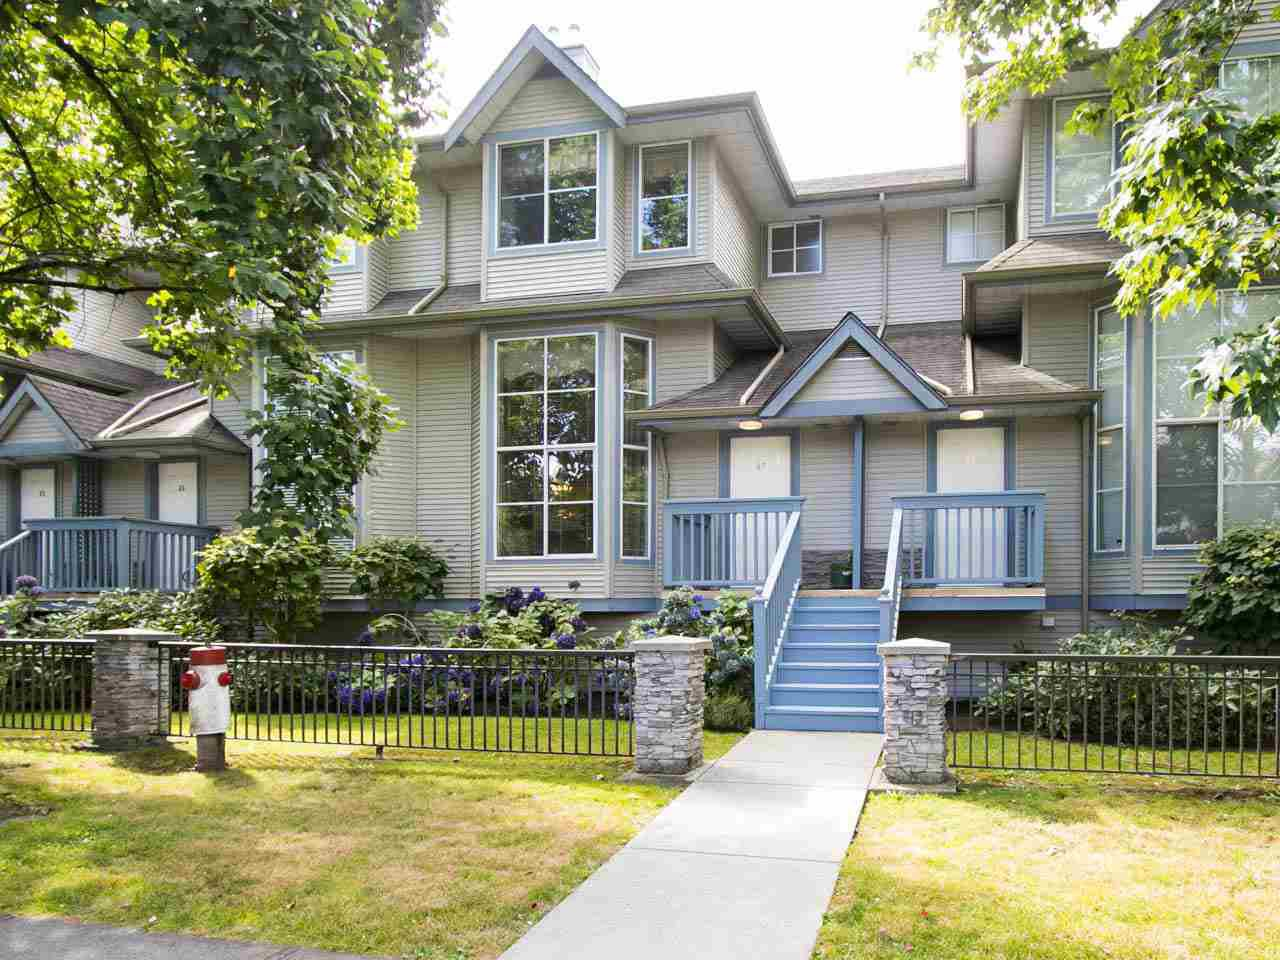 Main Photo: 47 19034 MCMYN ROAD in Pitt Meadows: Mid Meadows Townhouse for sale : MLS®# R2100043